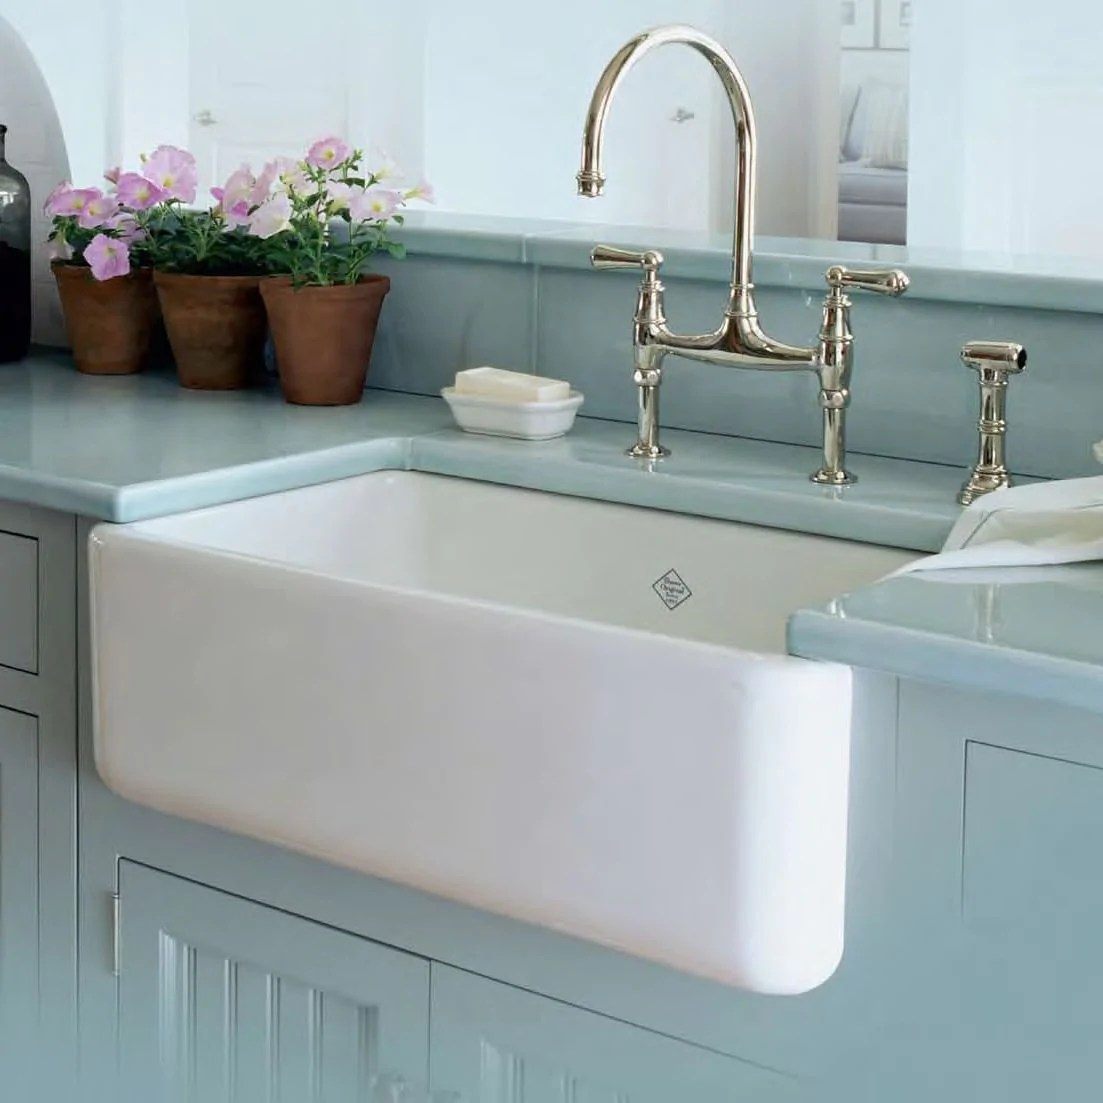 apron front fireclay kitchen sink